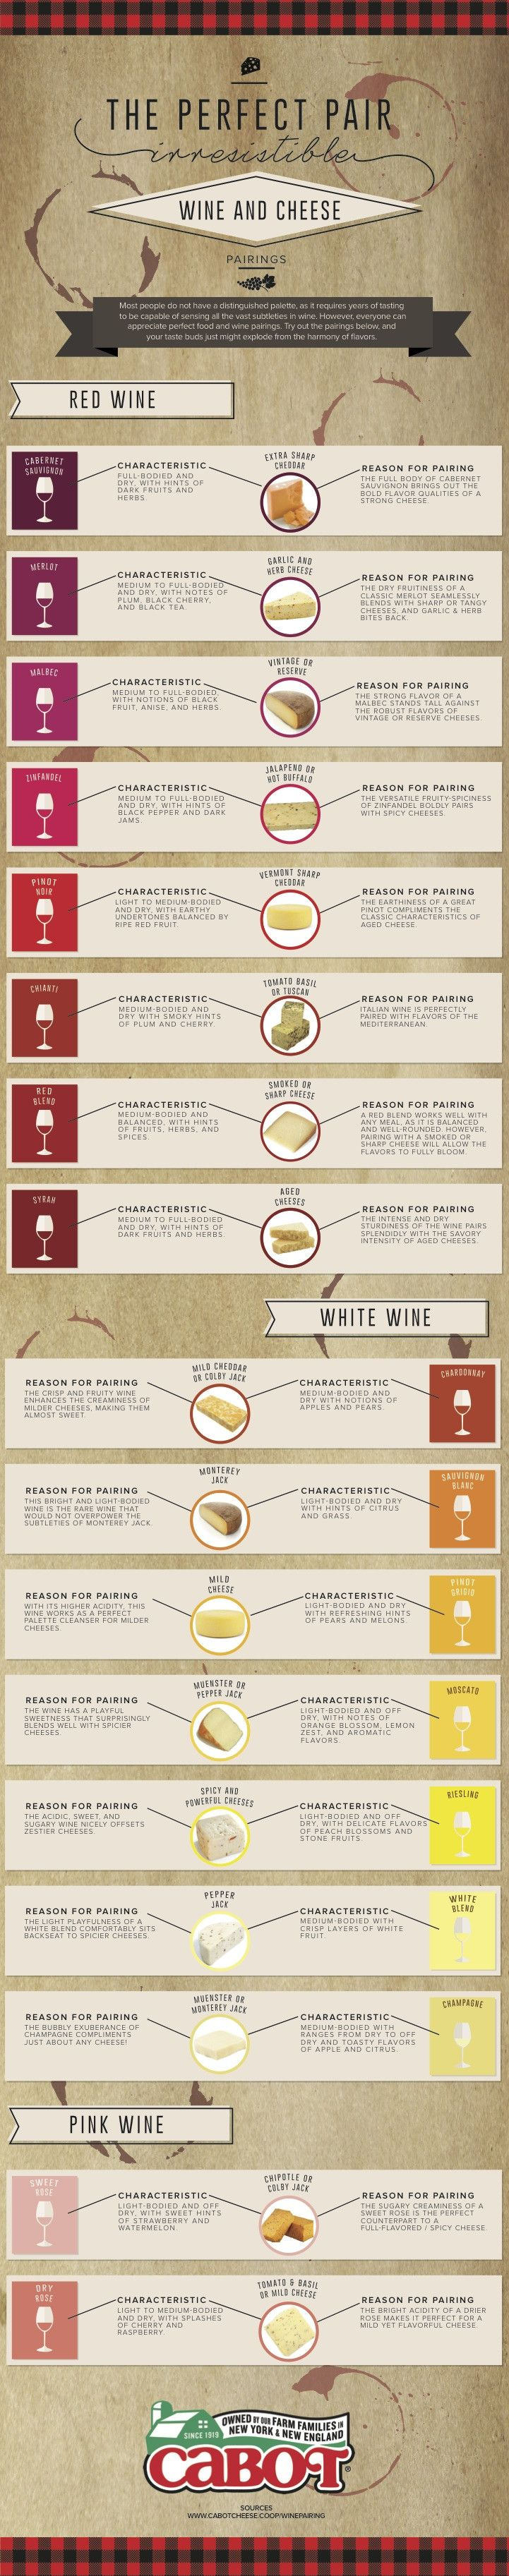 The perfect wine and cheese pairing. Its a great information - Im happy I found it.